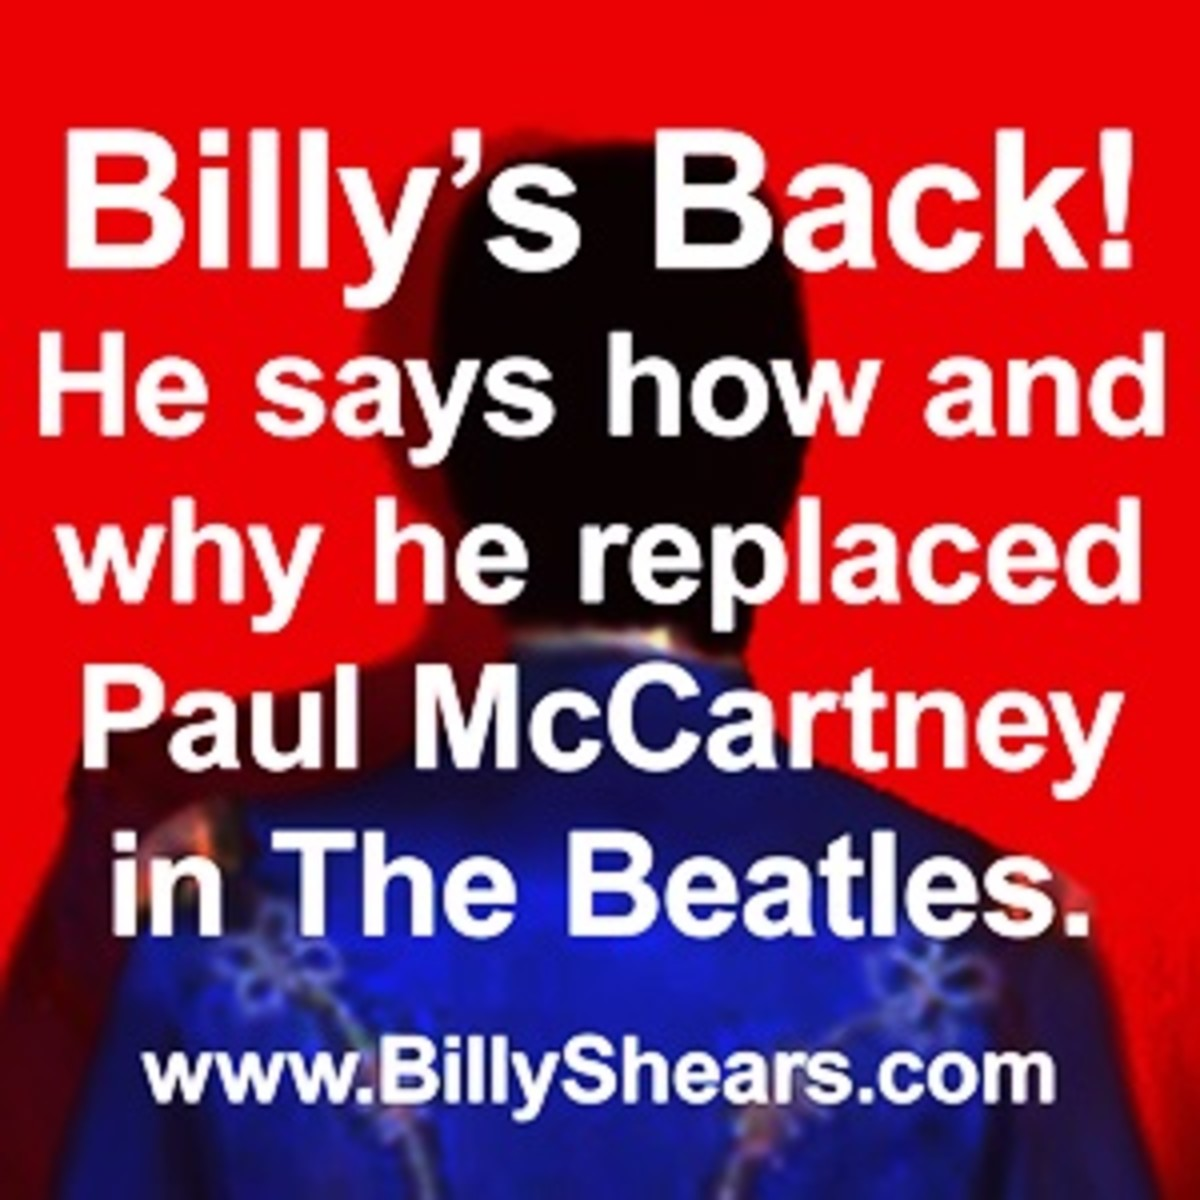 """Billy's Back!"" - Revelations of Paul McCartney's Replacement"